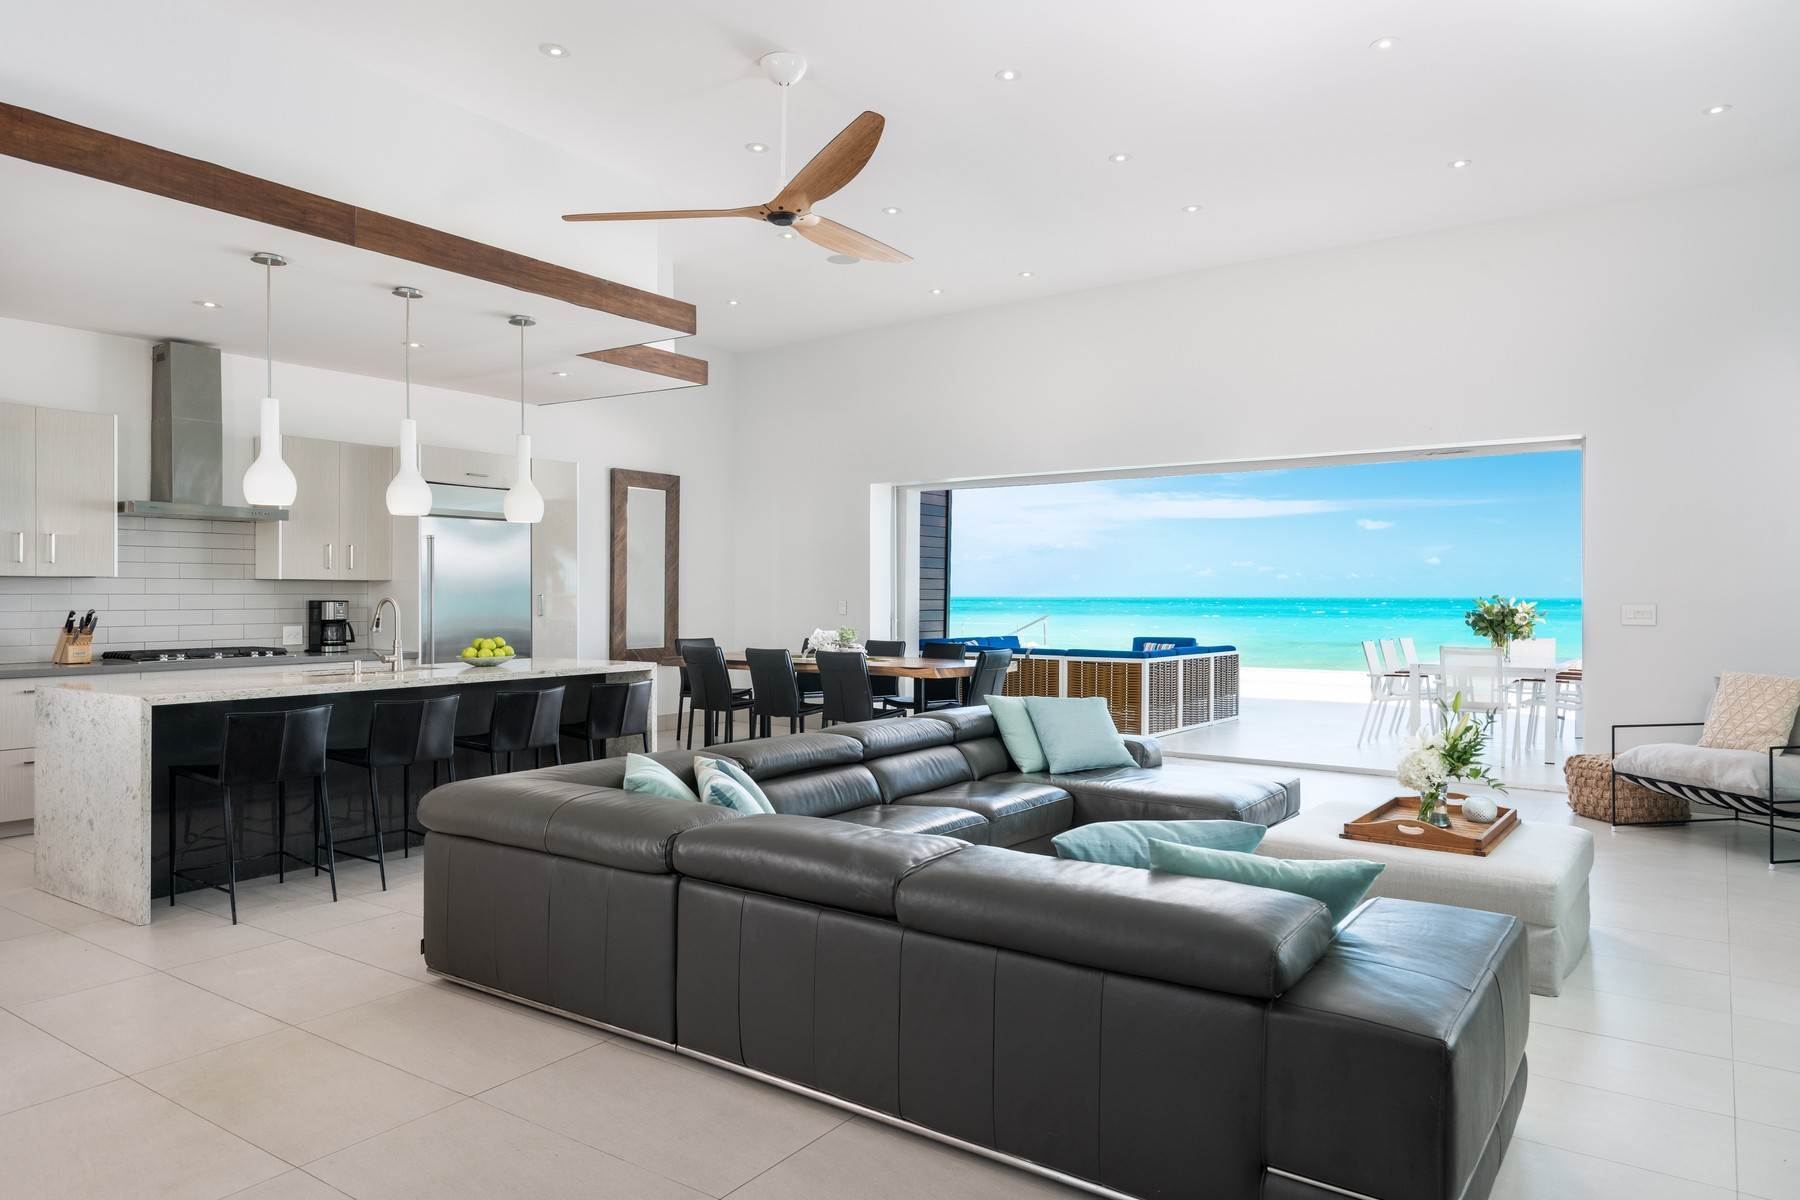 7. Single Family Homes for Sale at Tip Of The Tail Villa Turtle Tail, Providenciales Turks And Caicos Islands